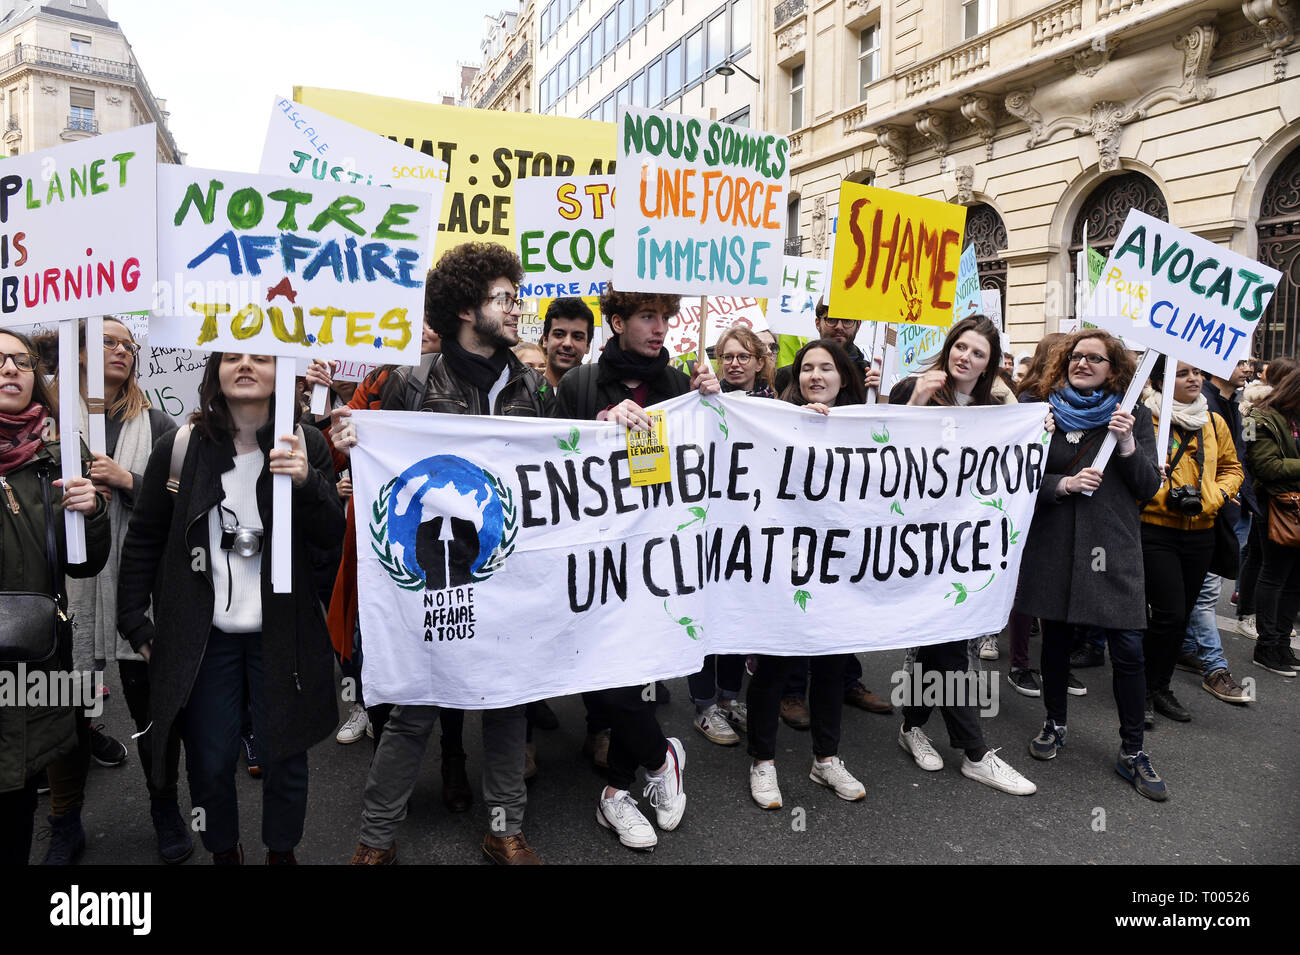 The March of the Century - Paris, France. 16th March 2019. 45 000 people took part in the demonstration against climate change (La Marche du Siécle) in Paris on the 16th march 2019 Credit: Frédéric VIELCANET/Alamy Live News - Stock Image